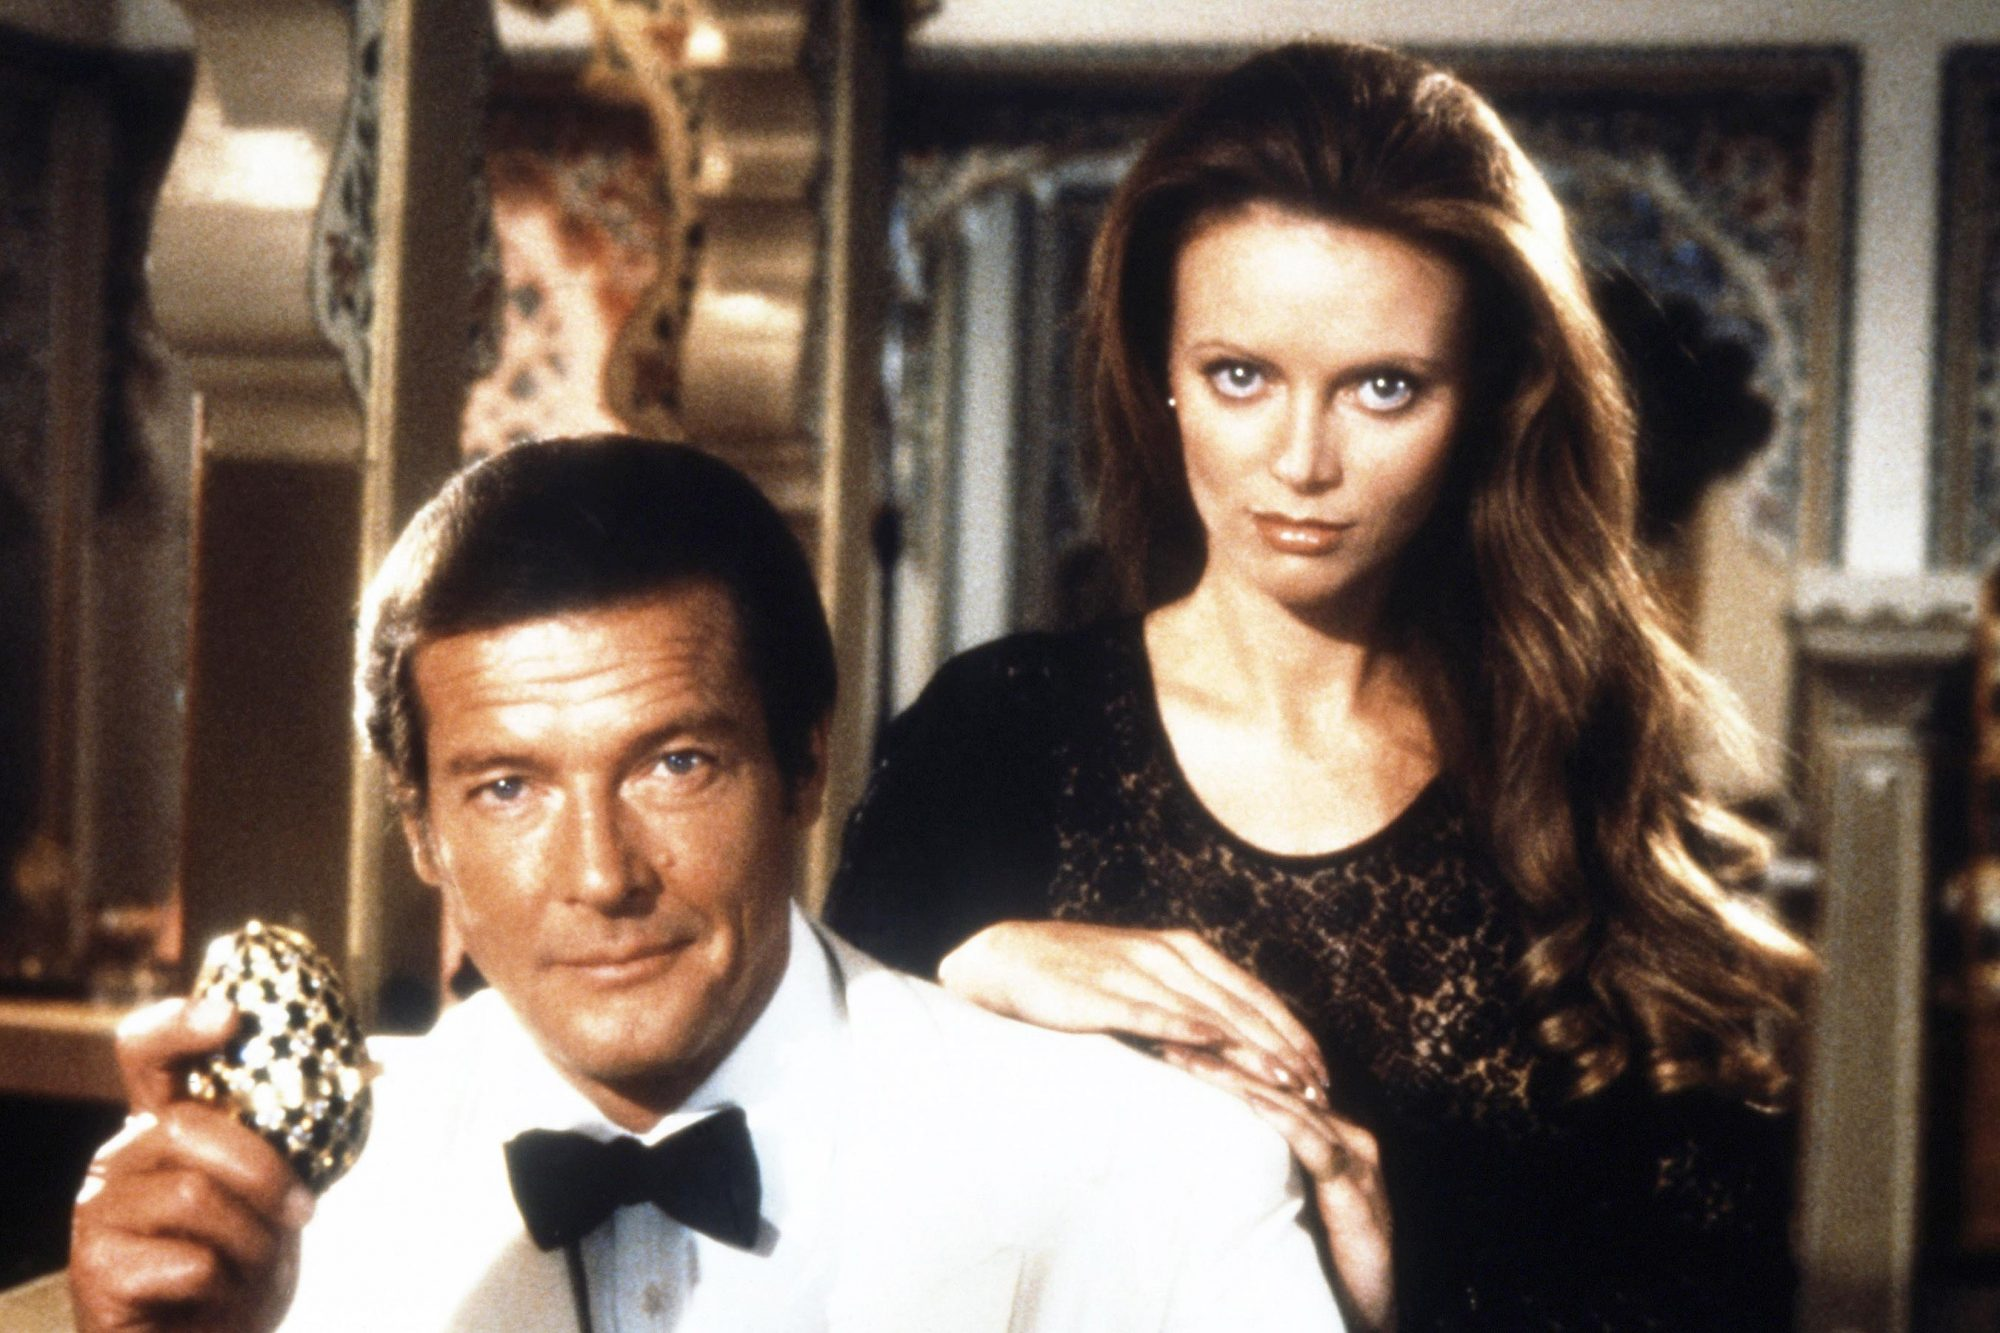 OCTOPUSSY, from left: Roger Moore, Kristina Wayborn, 1983, (c) United Artists/courtesy Everett Colle